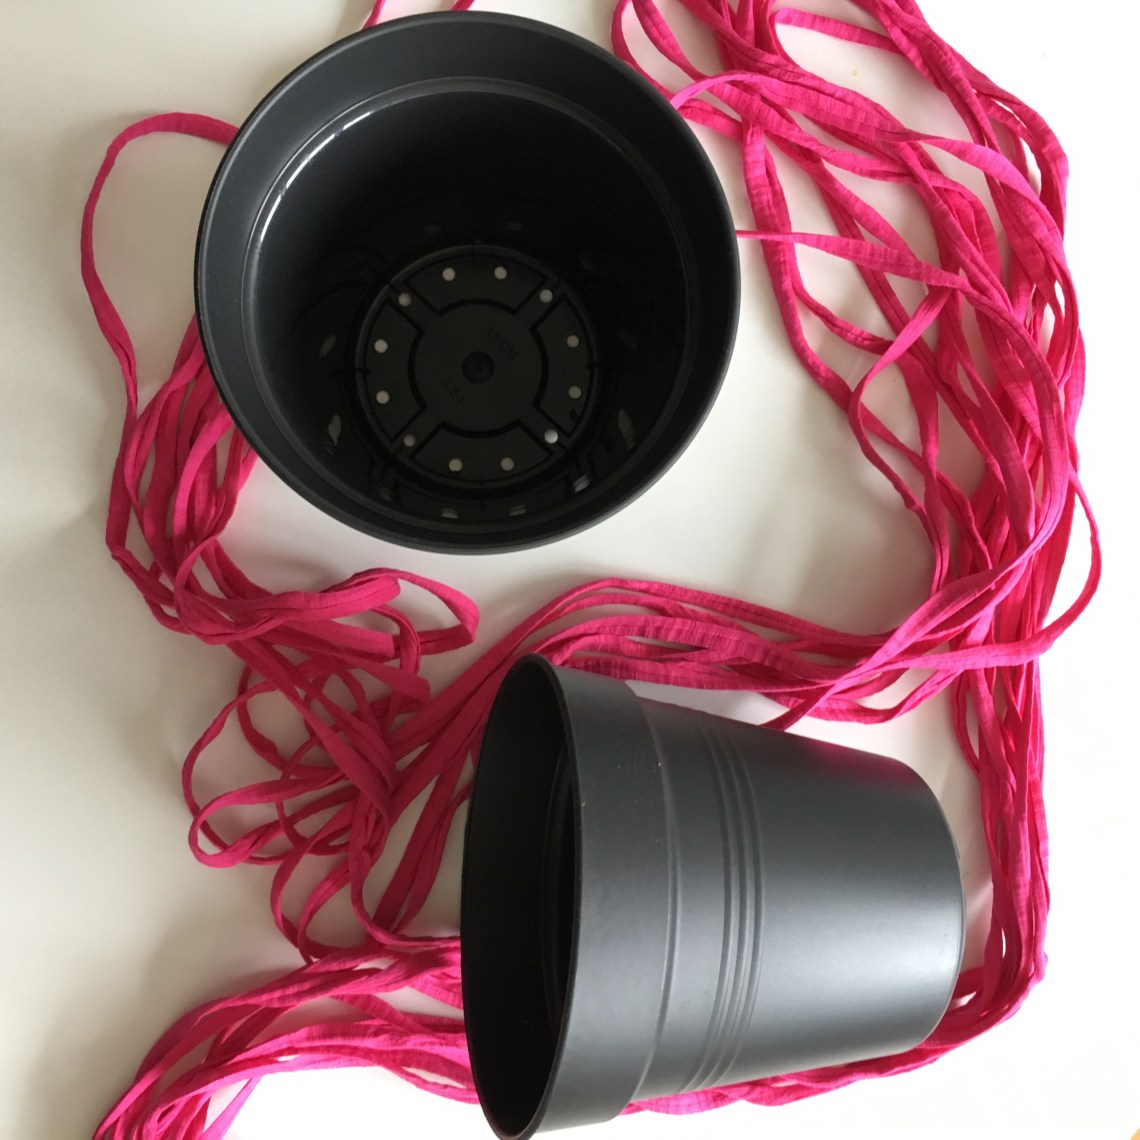 You need eight strands of yarn and plastic pots